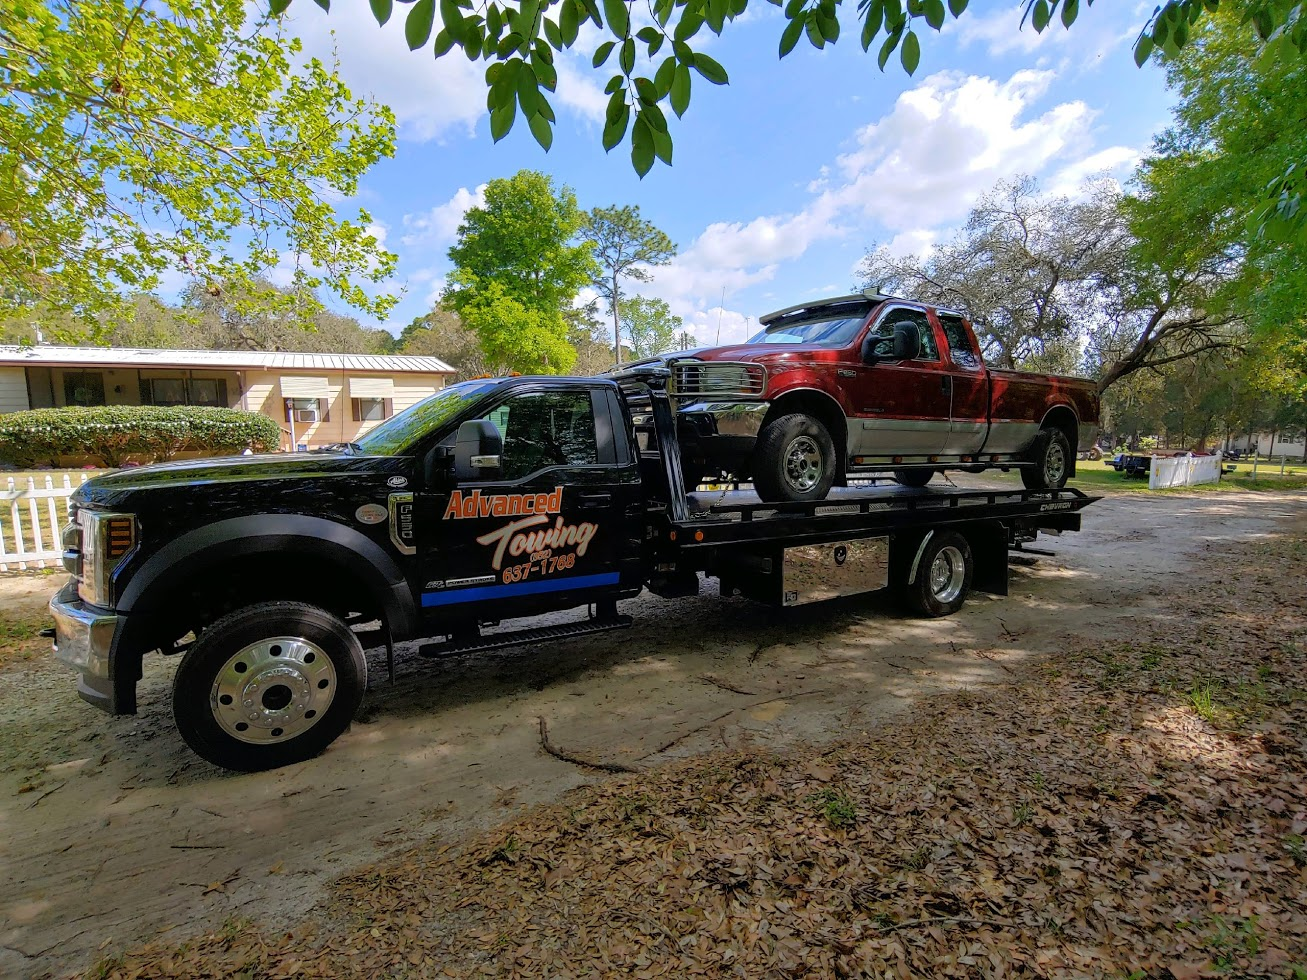 Advanced Towing image 34